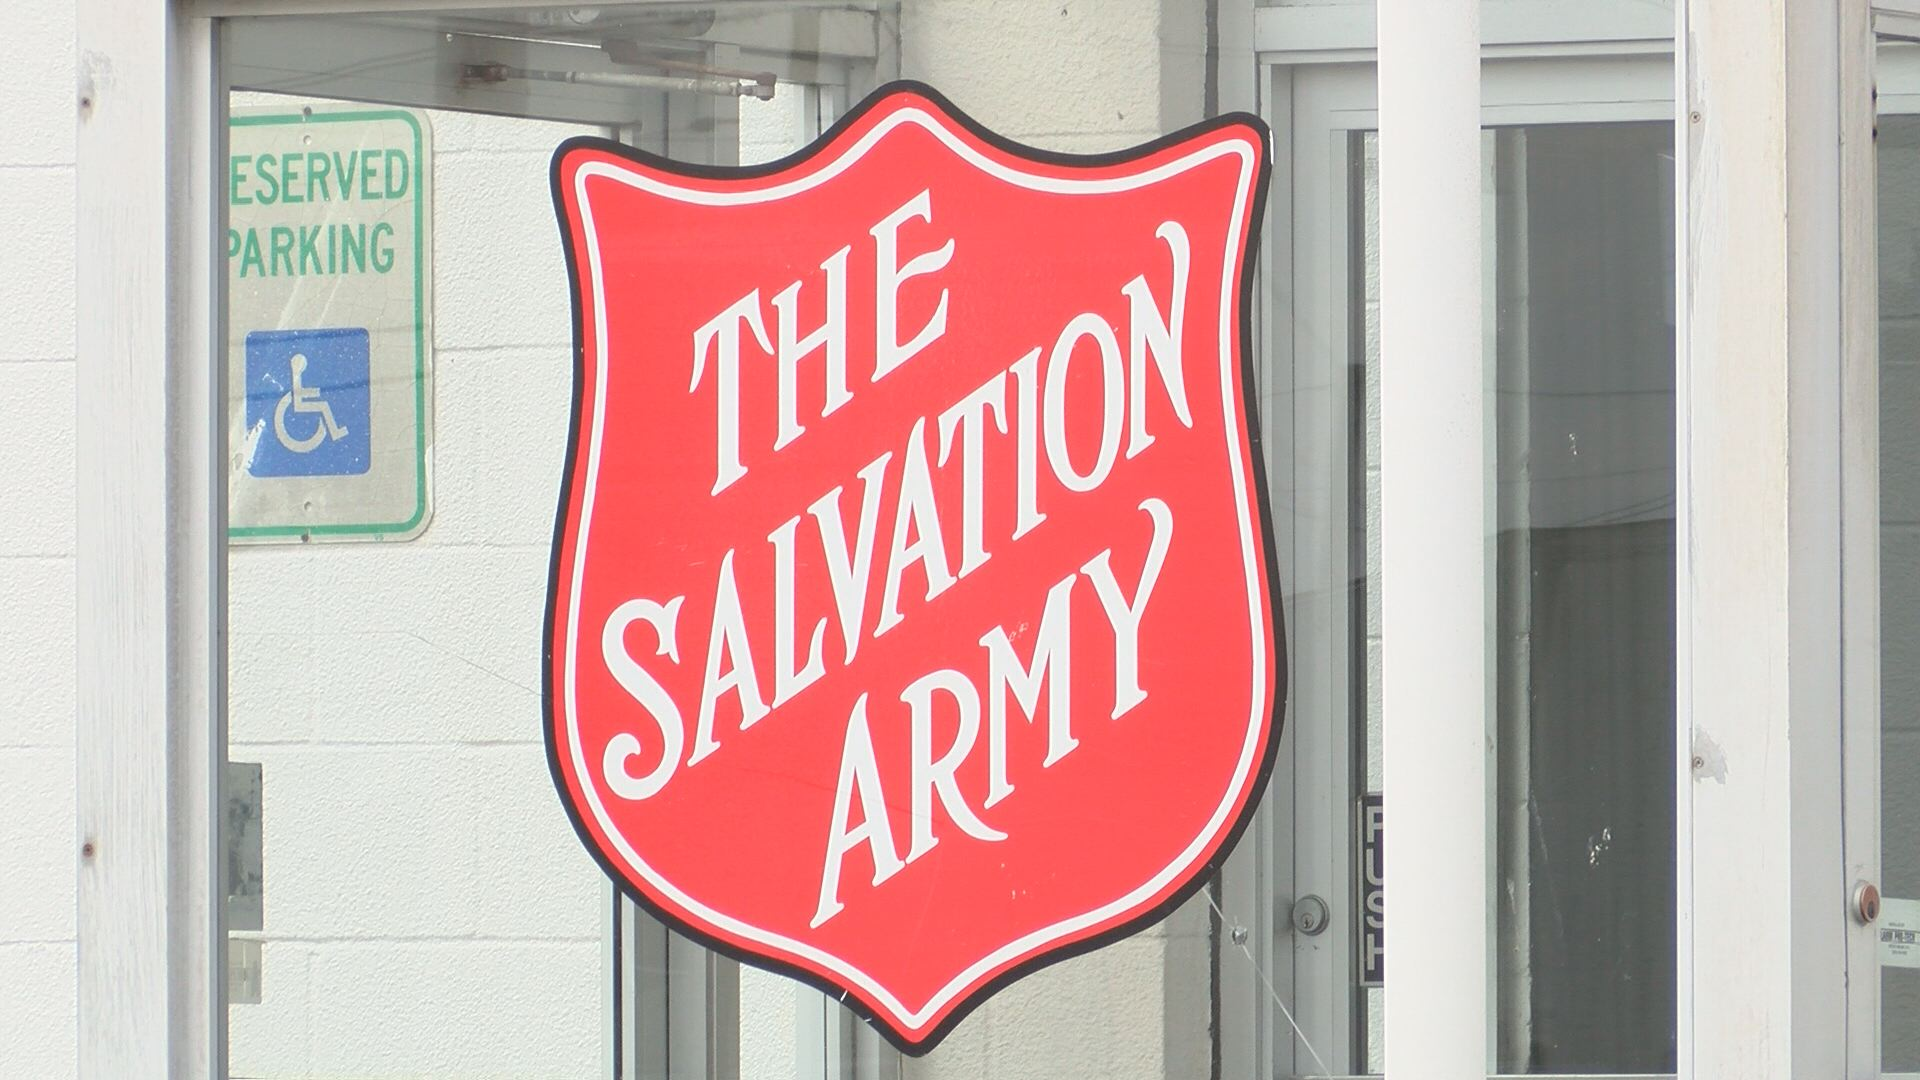 salvation army_238130